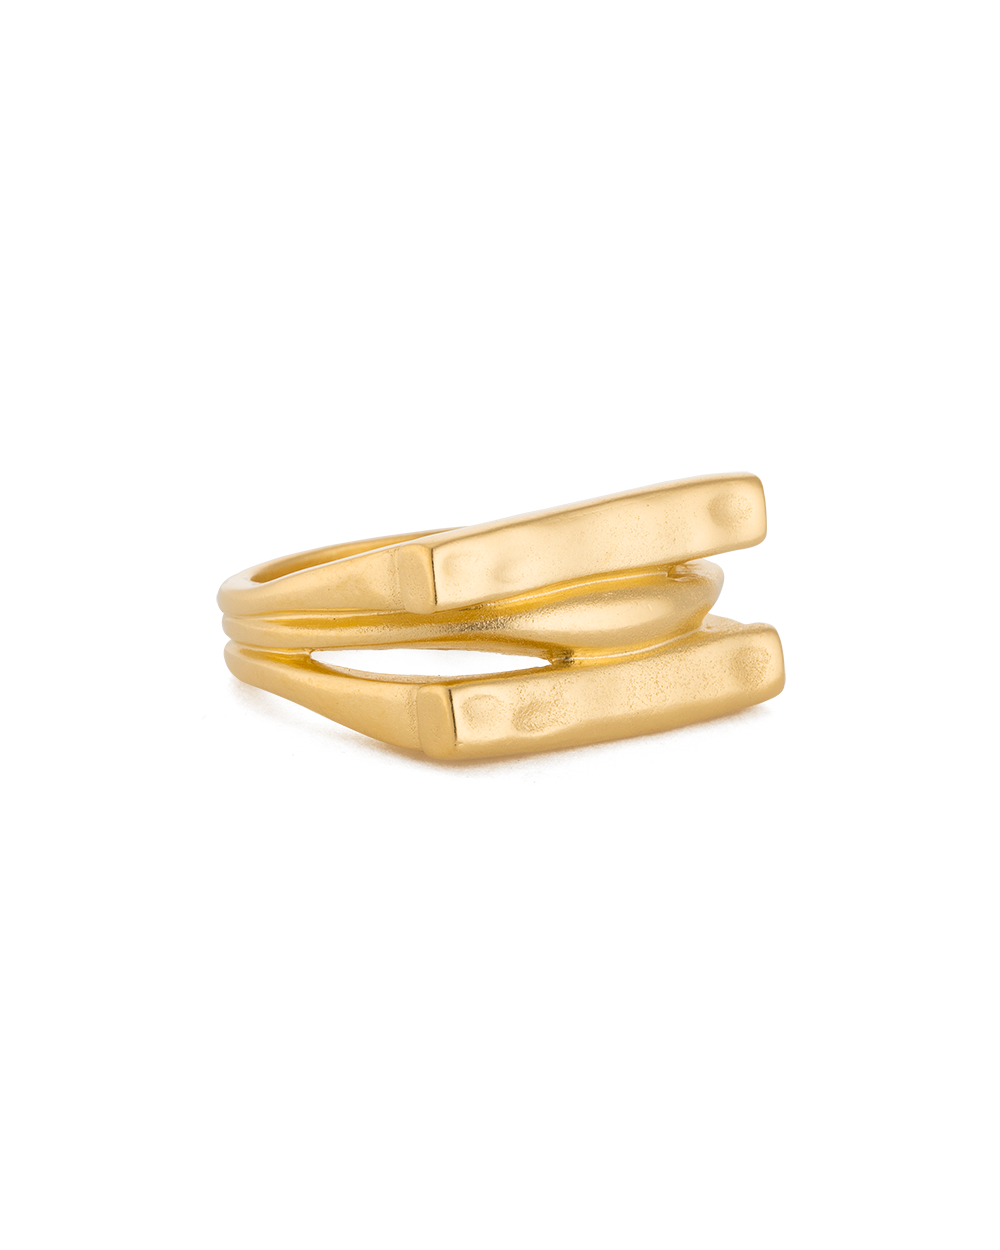 ELEMENTS RING (18K-GOLD-PLATED) - SIDE